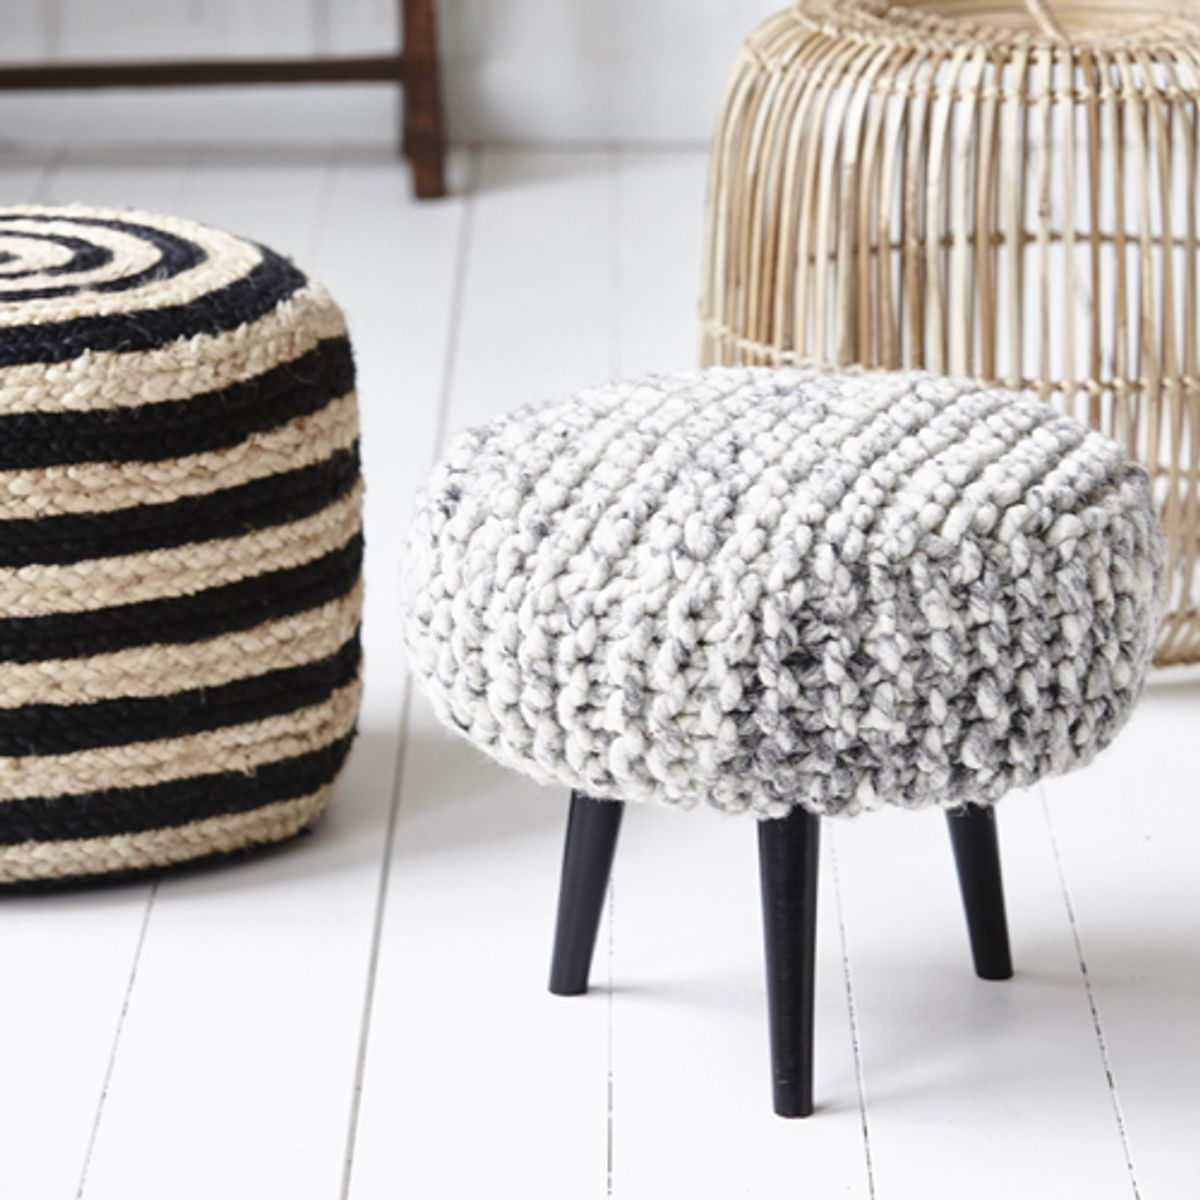 pouf tabouret tr pied laine tricot e gris chin house doctor decoclico. Black Bedroom Furniture Sets. Home Design Ideas